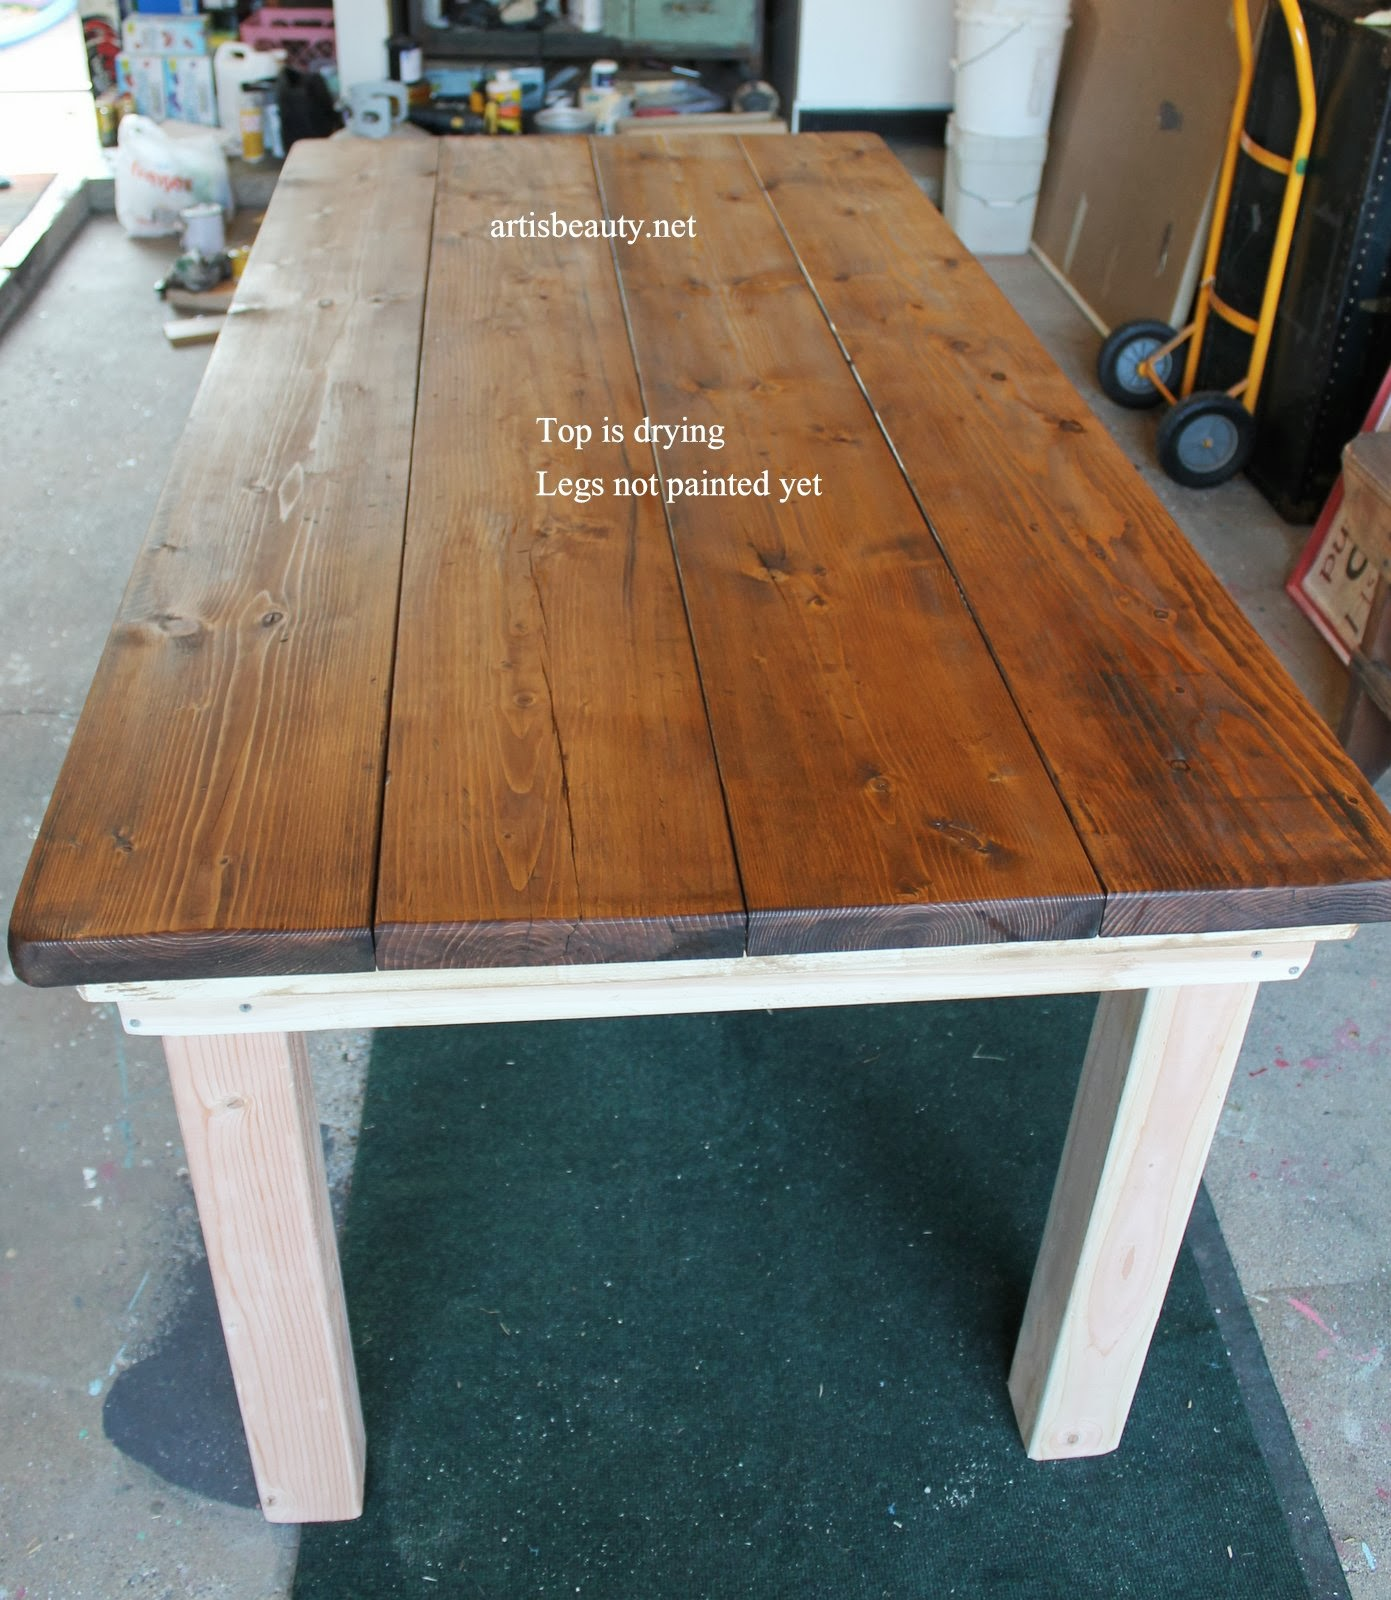 remodelaholic | build a farmhouse table for under $100